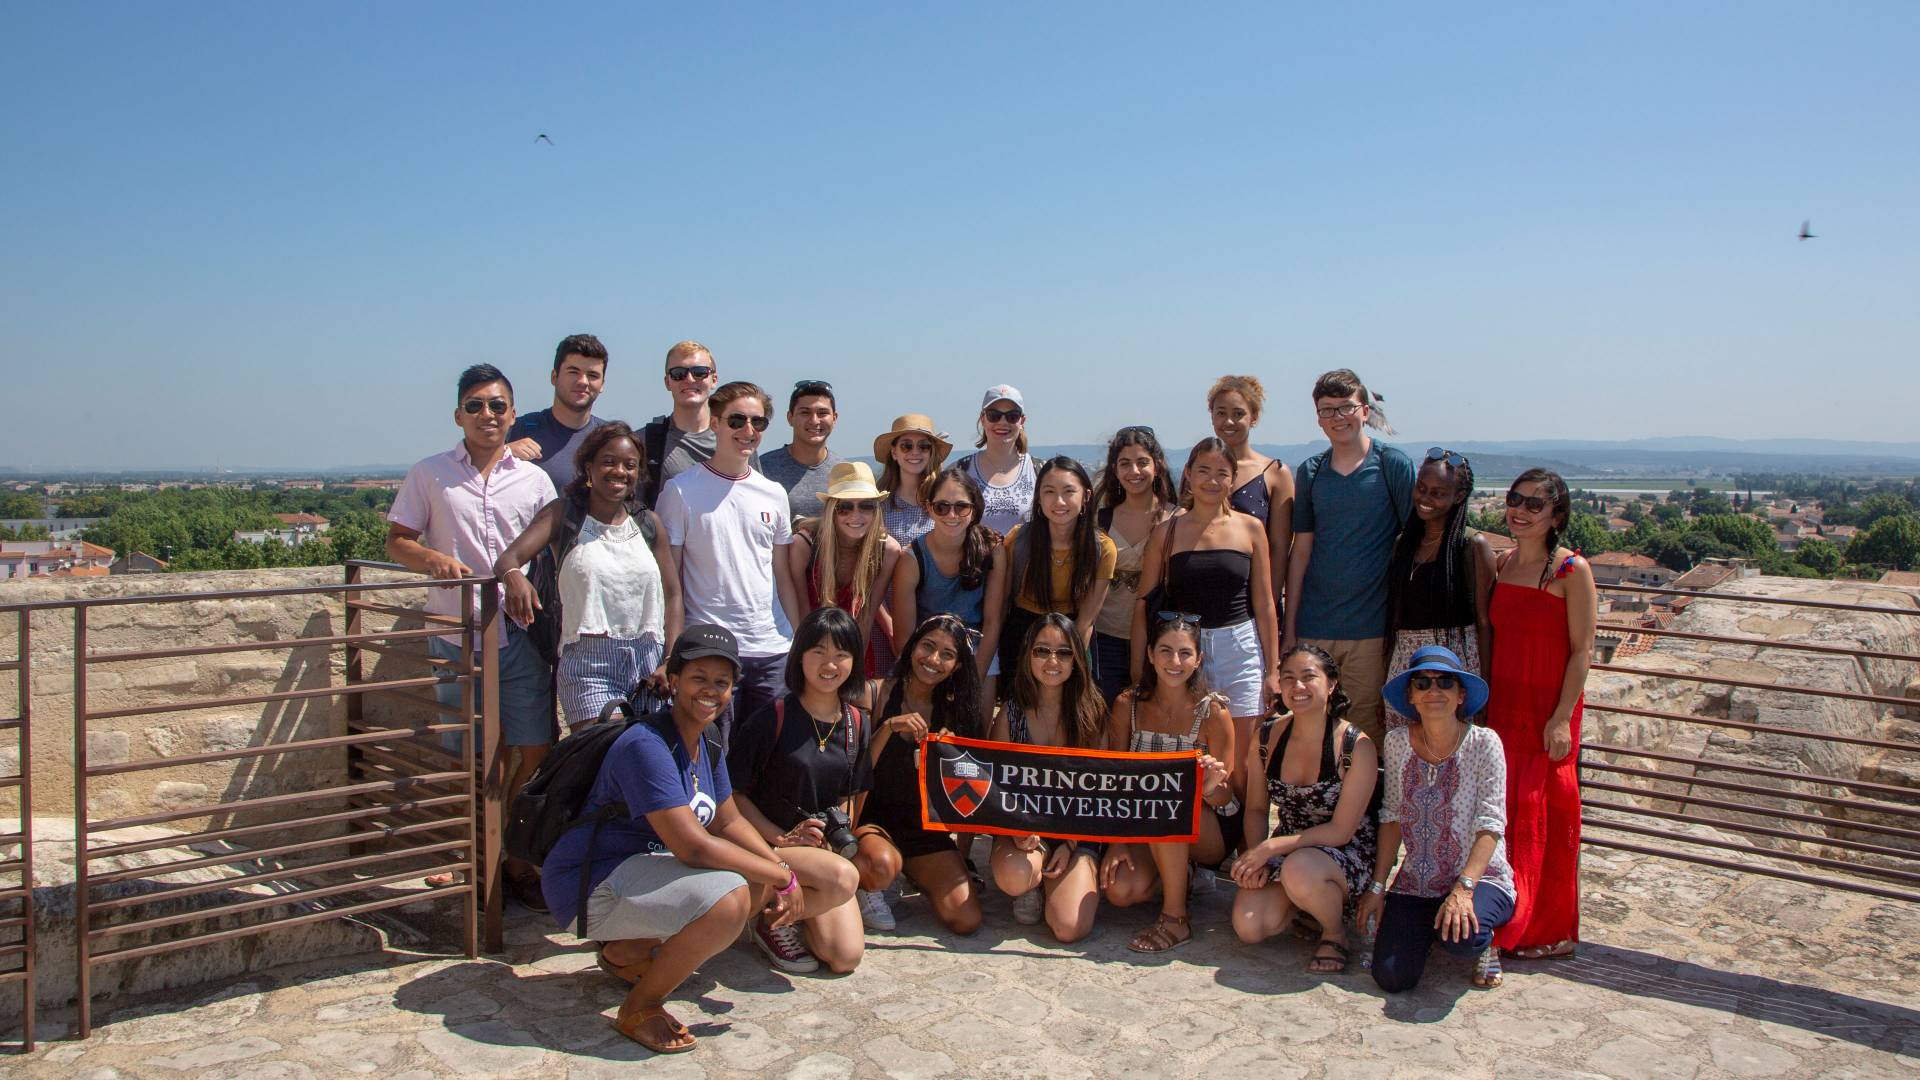 Students and faculty pose with Princeton University banner in France